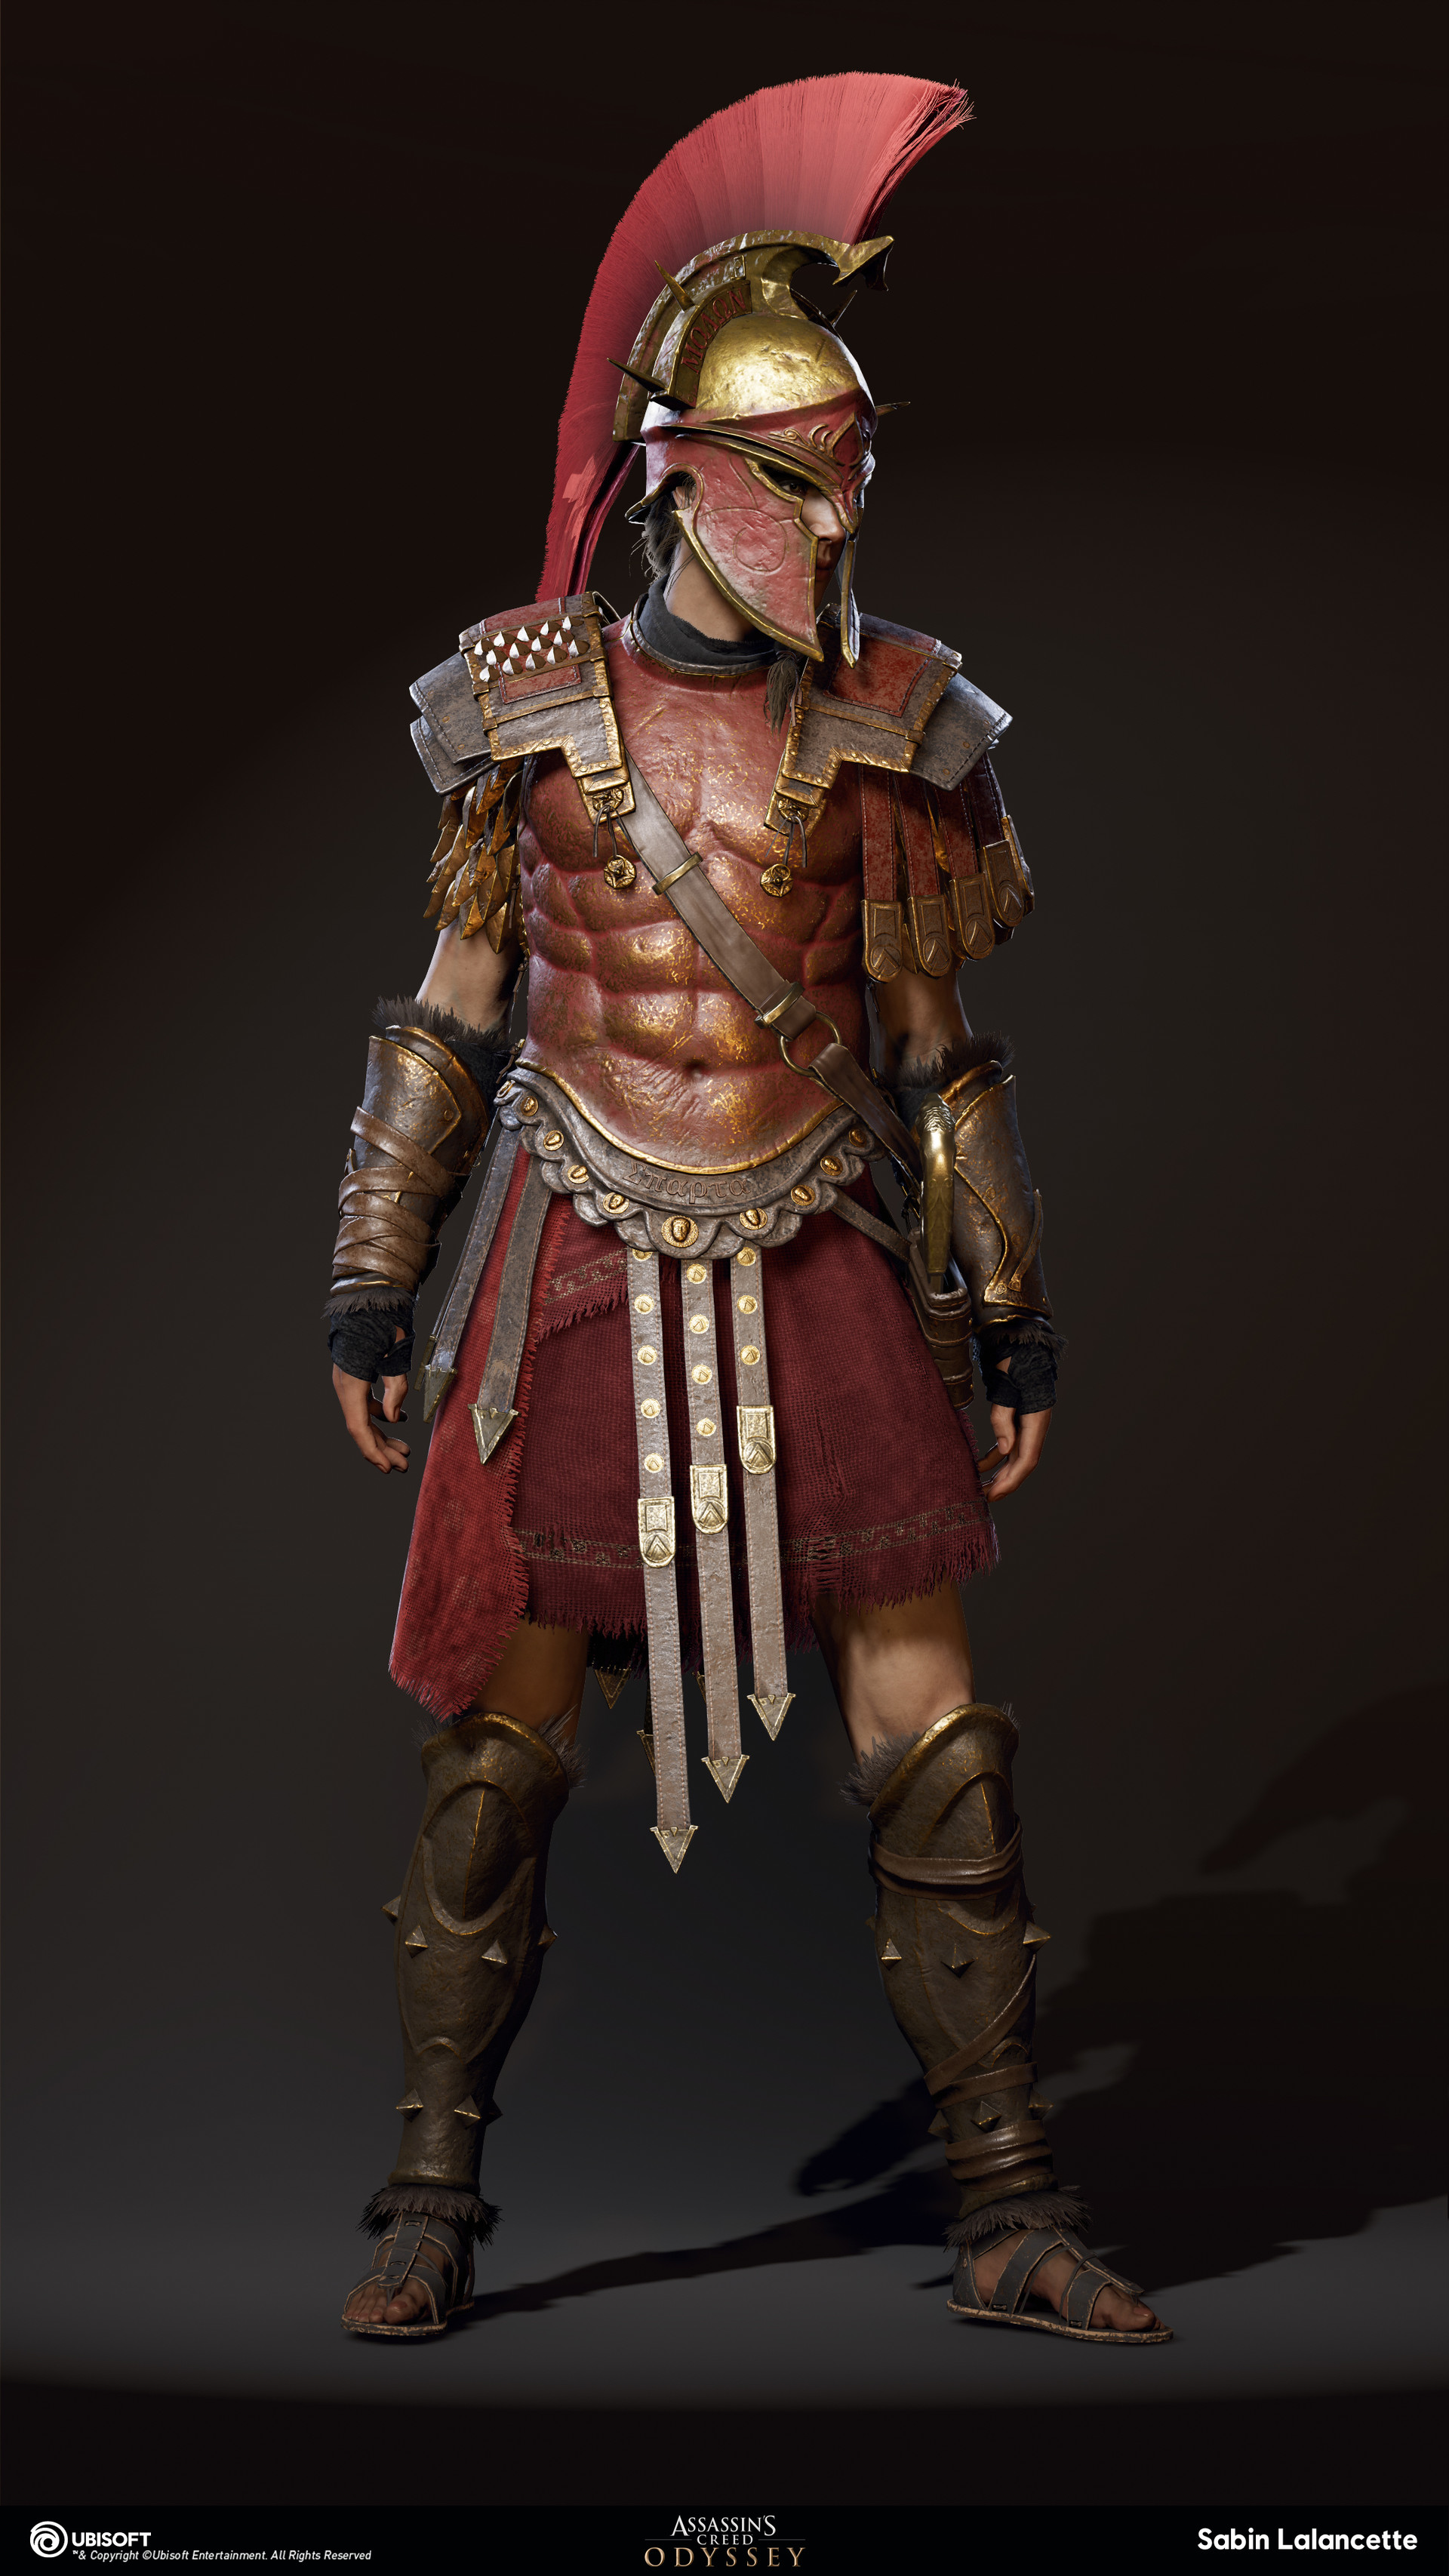 Spartan War Hero Armor Set From Assassin S Creed Odyssey Rpf Costume And Prop Maker Community